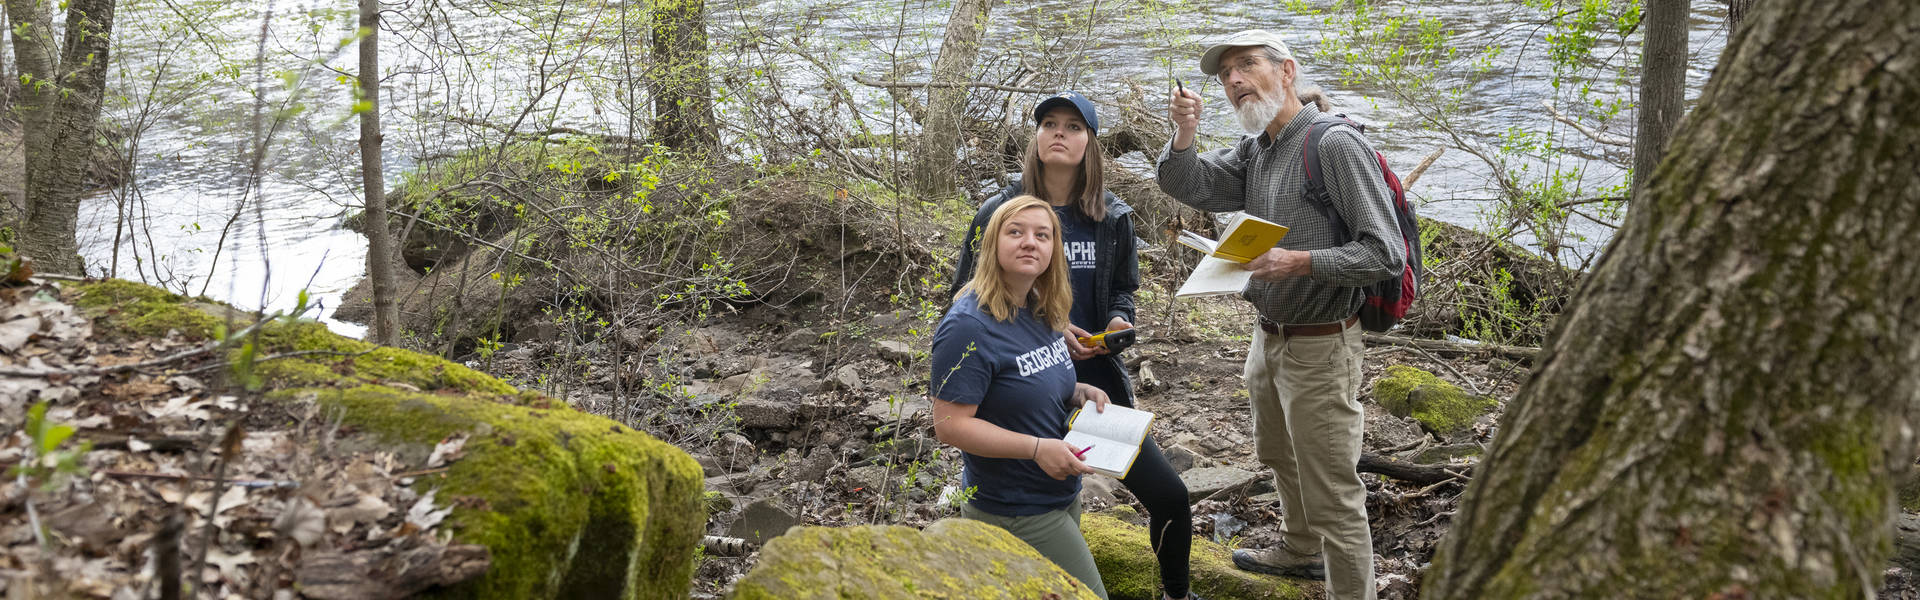 Doug Faulkner and students on Chippewa River bank